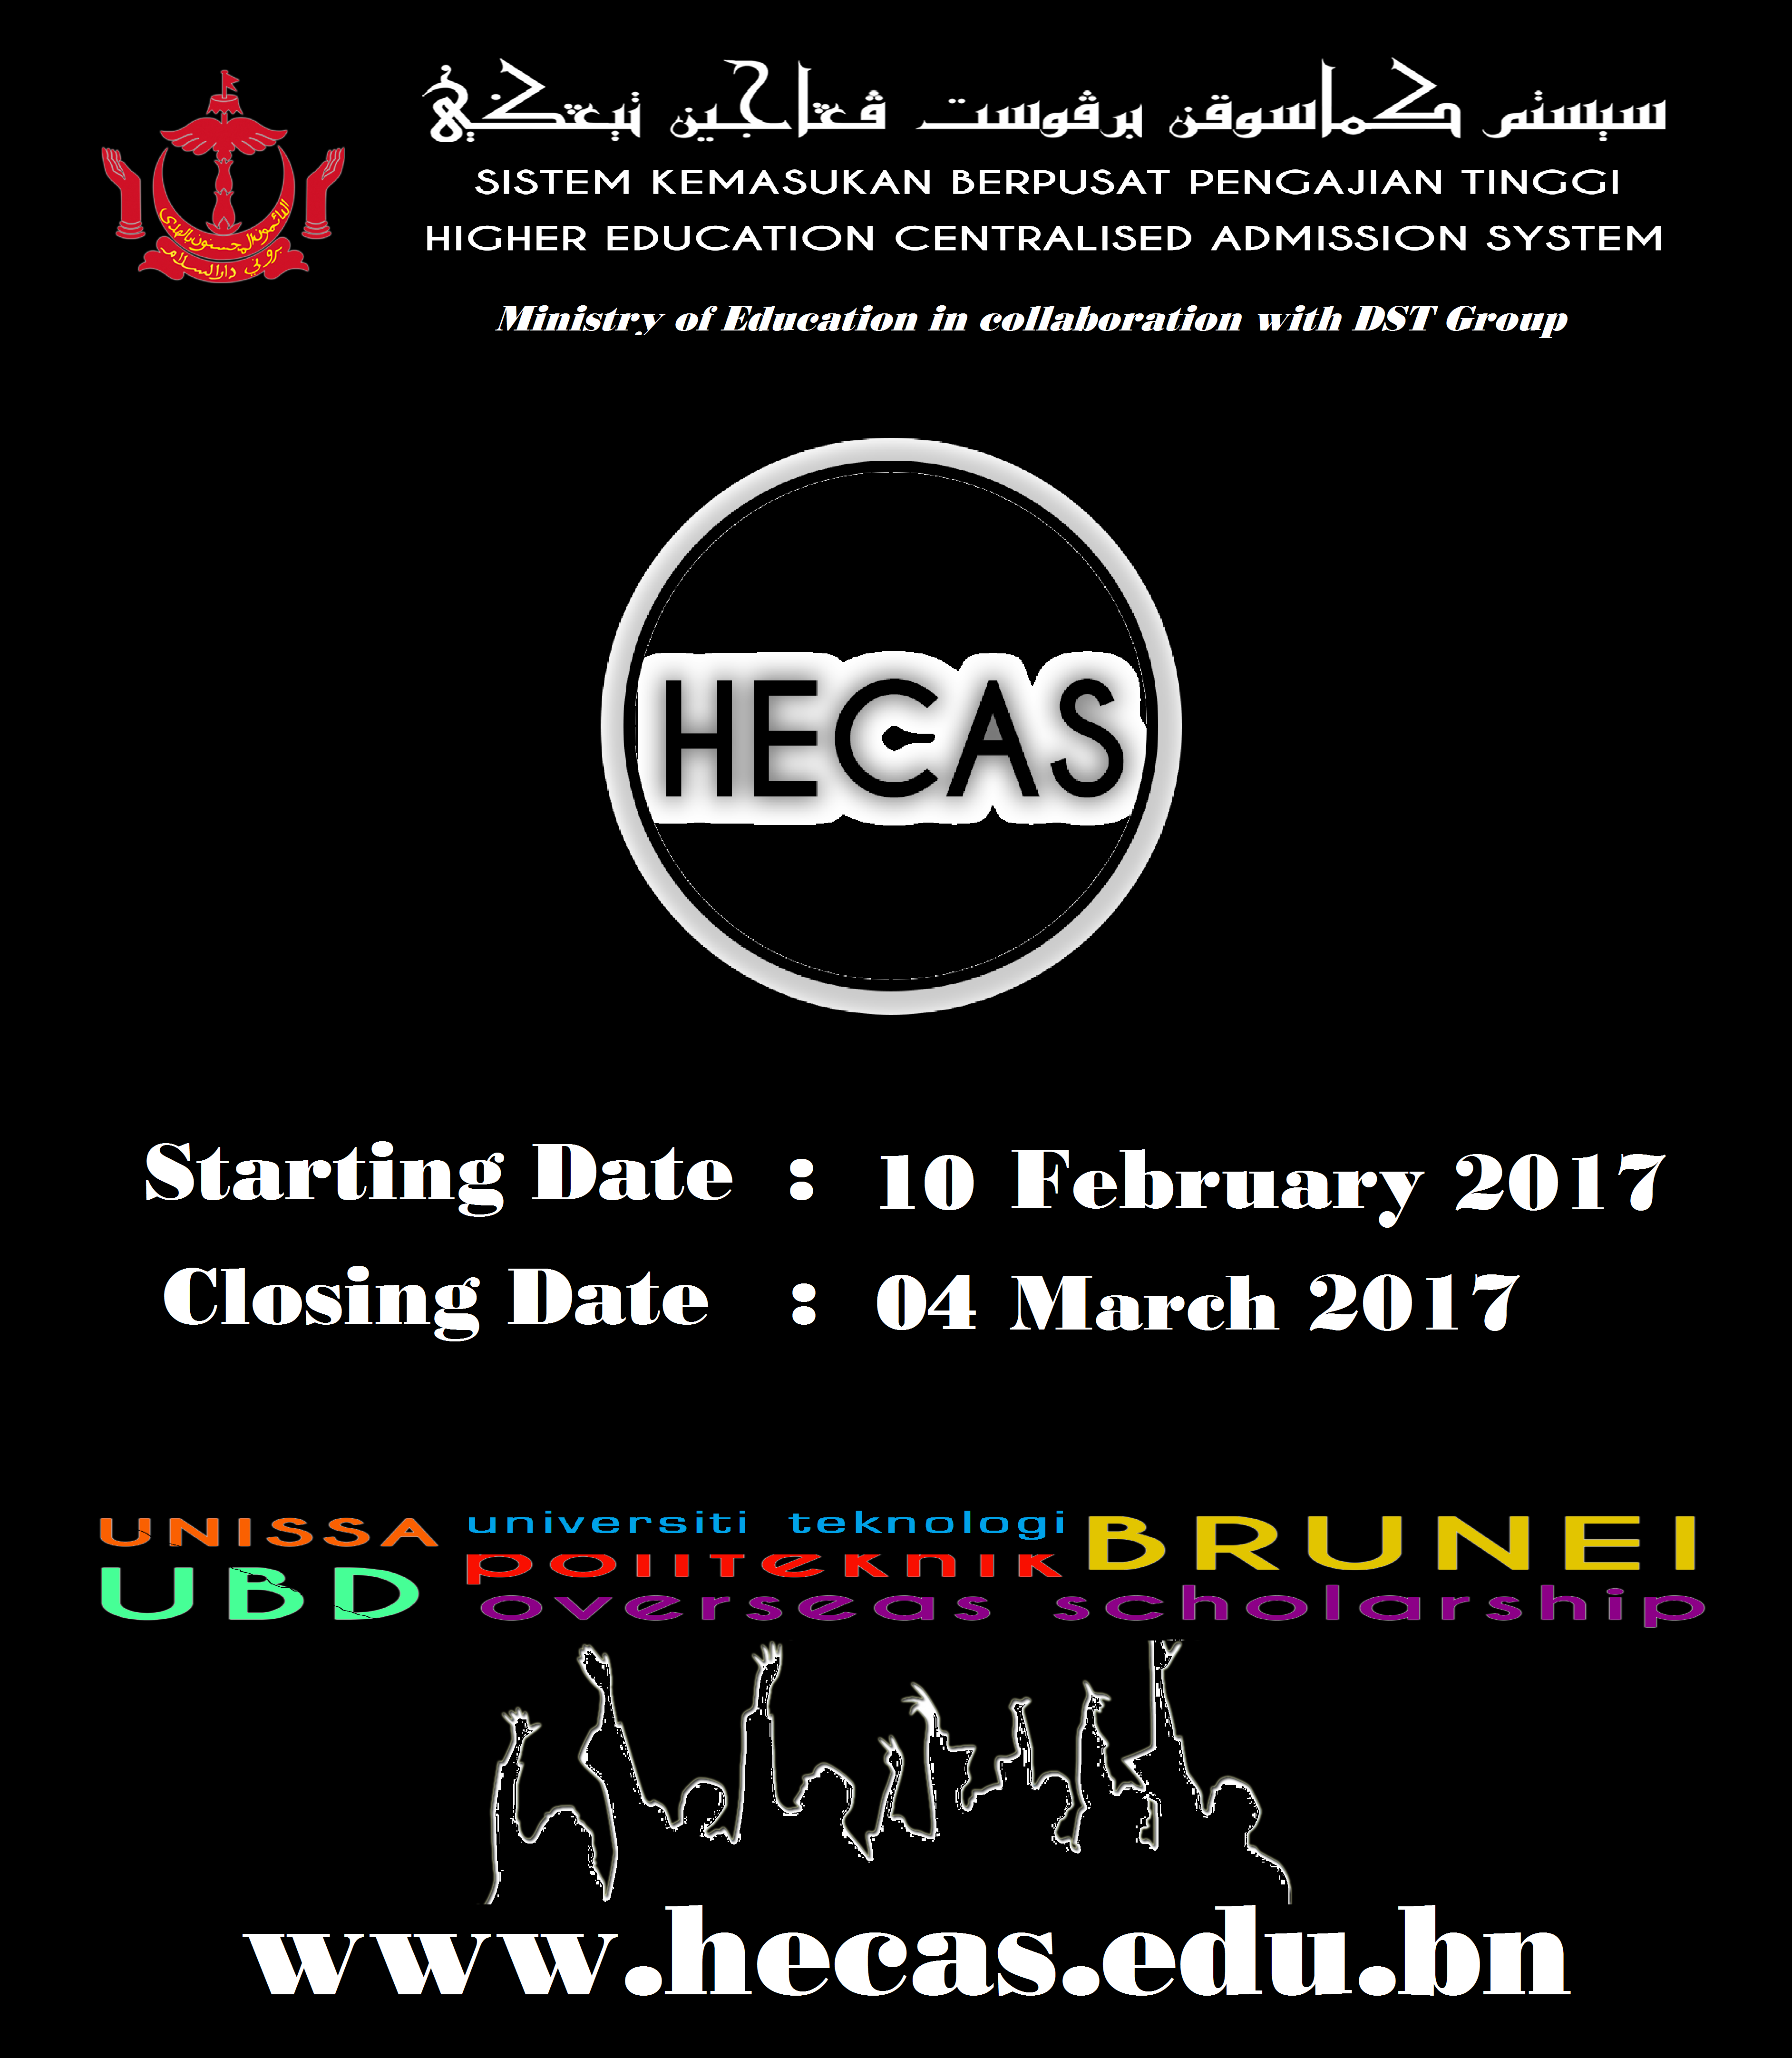 HECAS Poster for MoE Website 08Feb2017.png